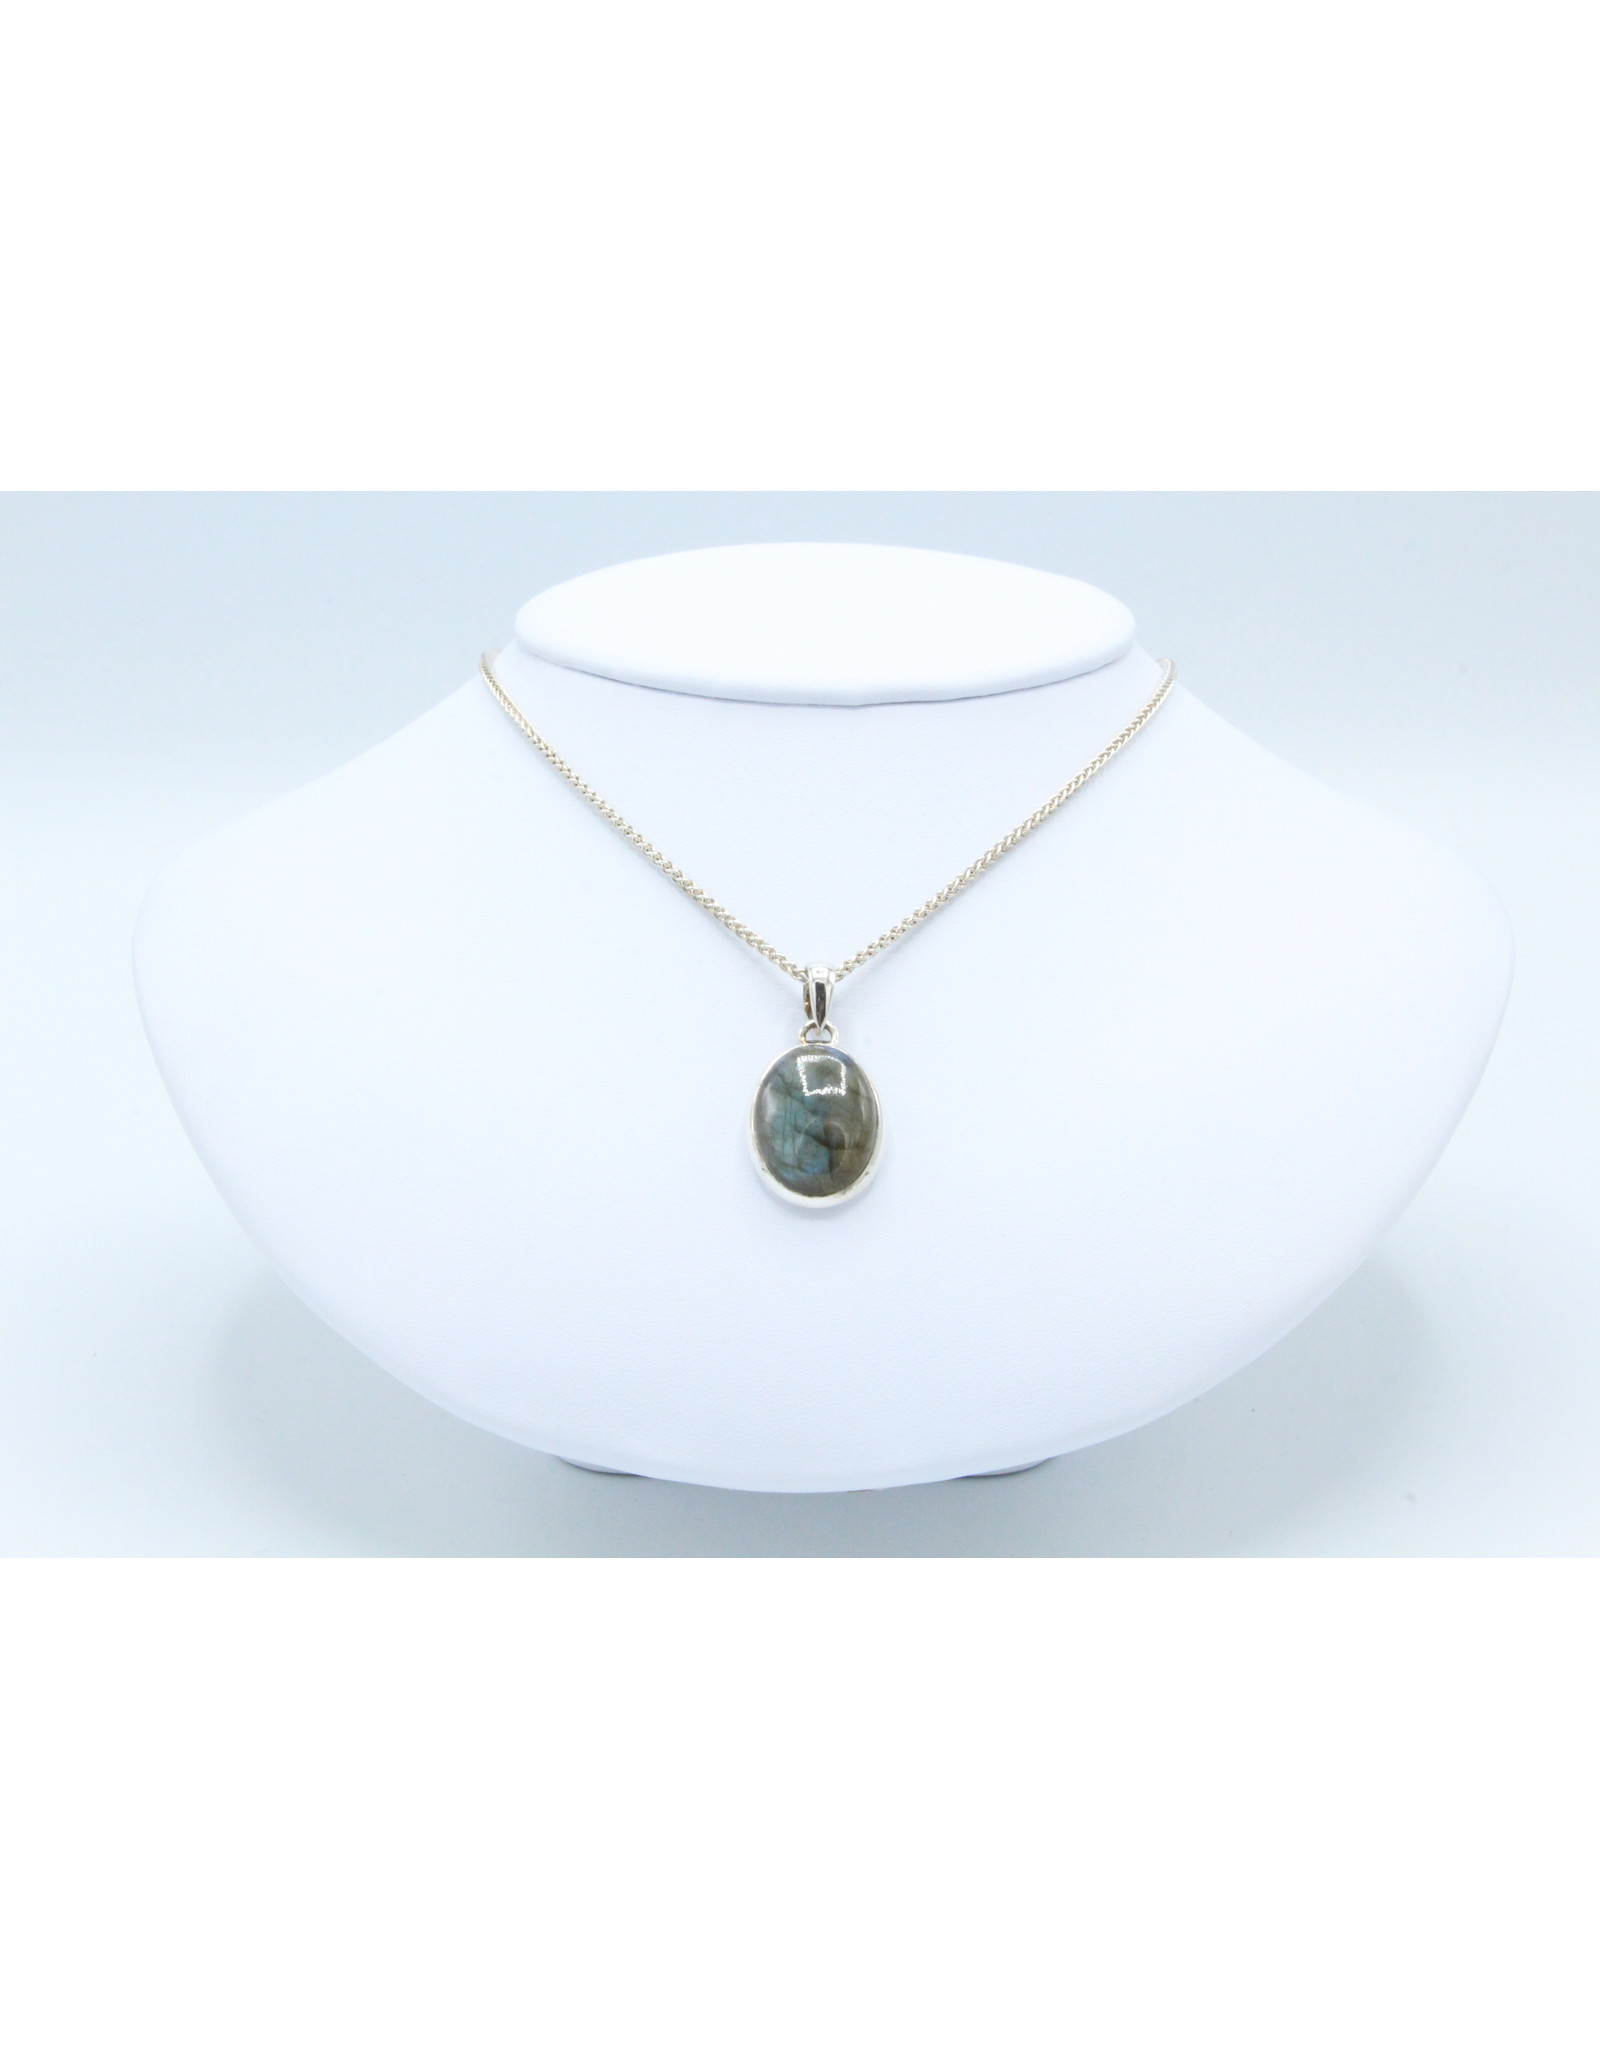 Labradorite Necklace - 104474